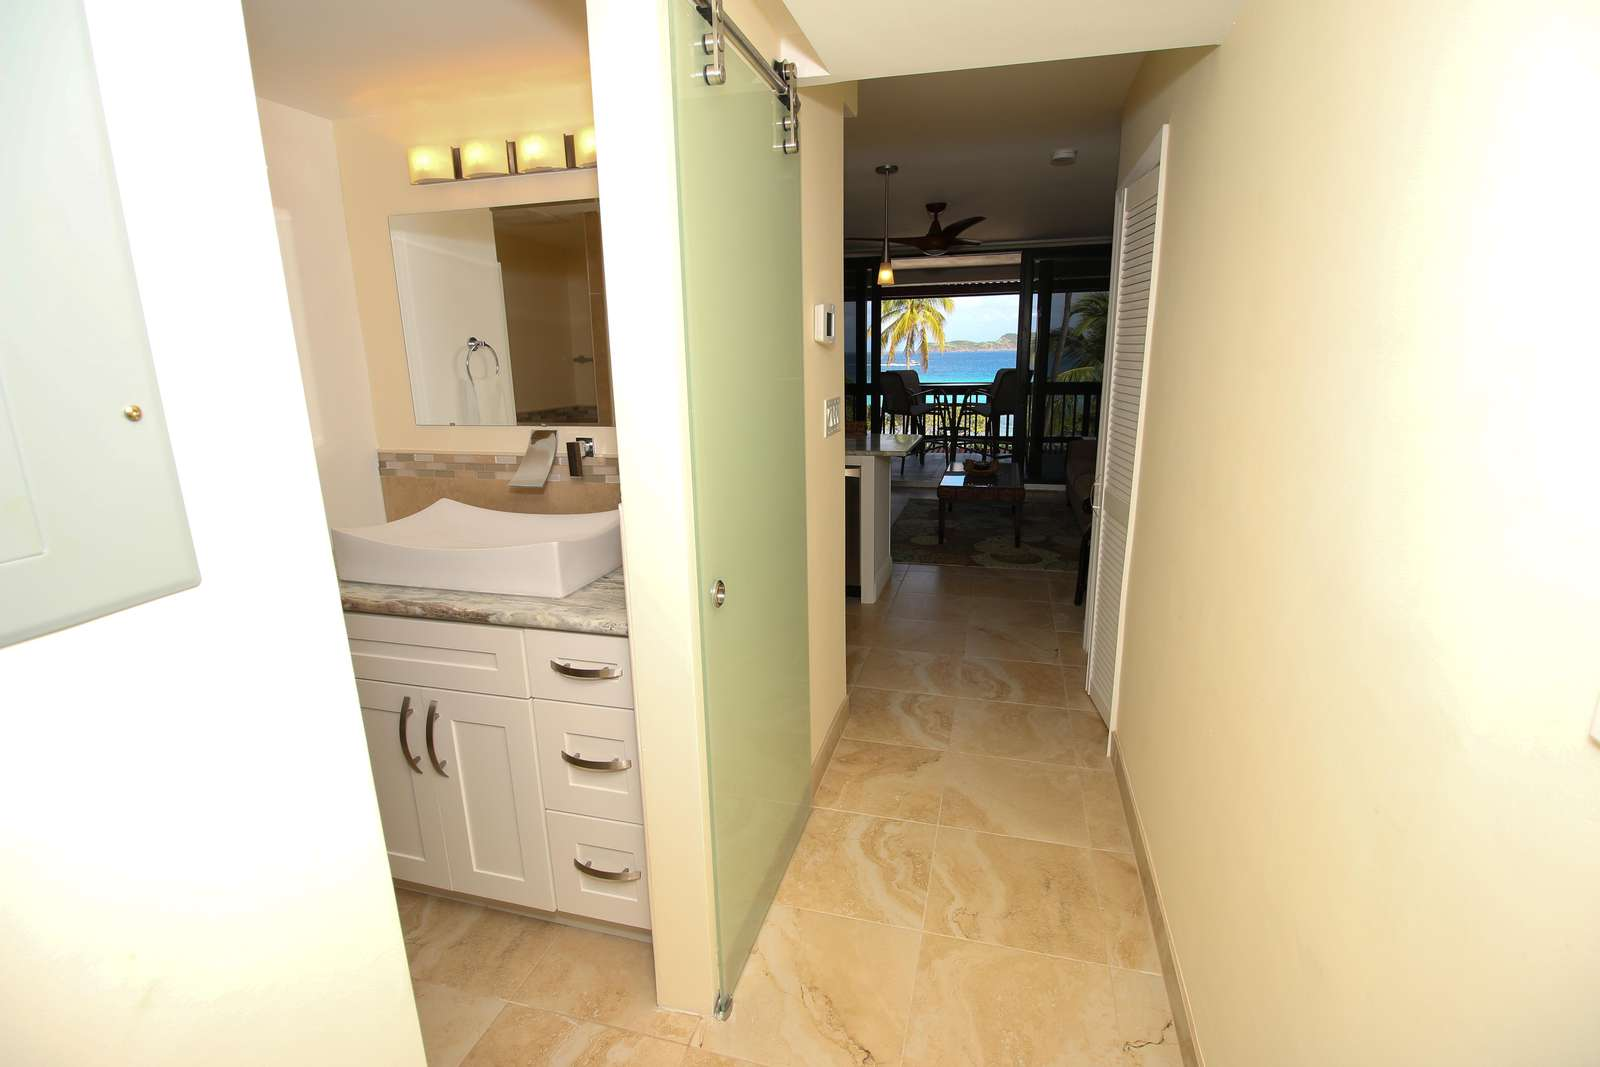 Entry way with full bath off the left